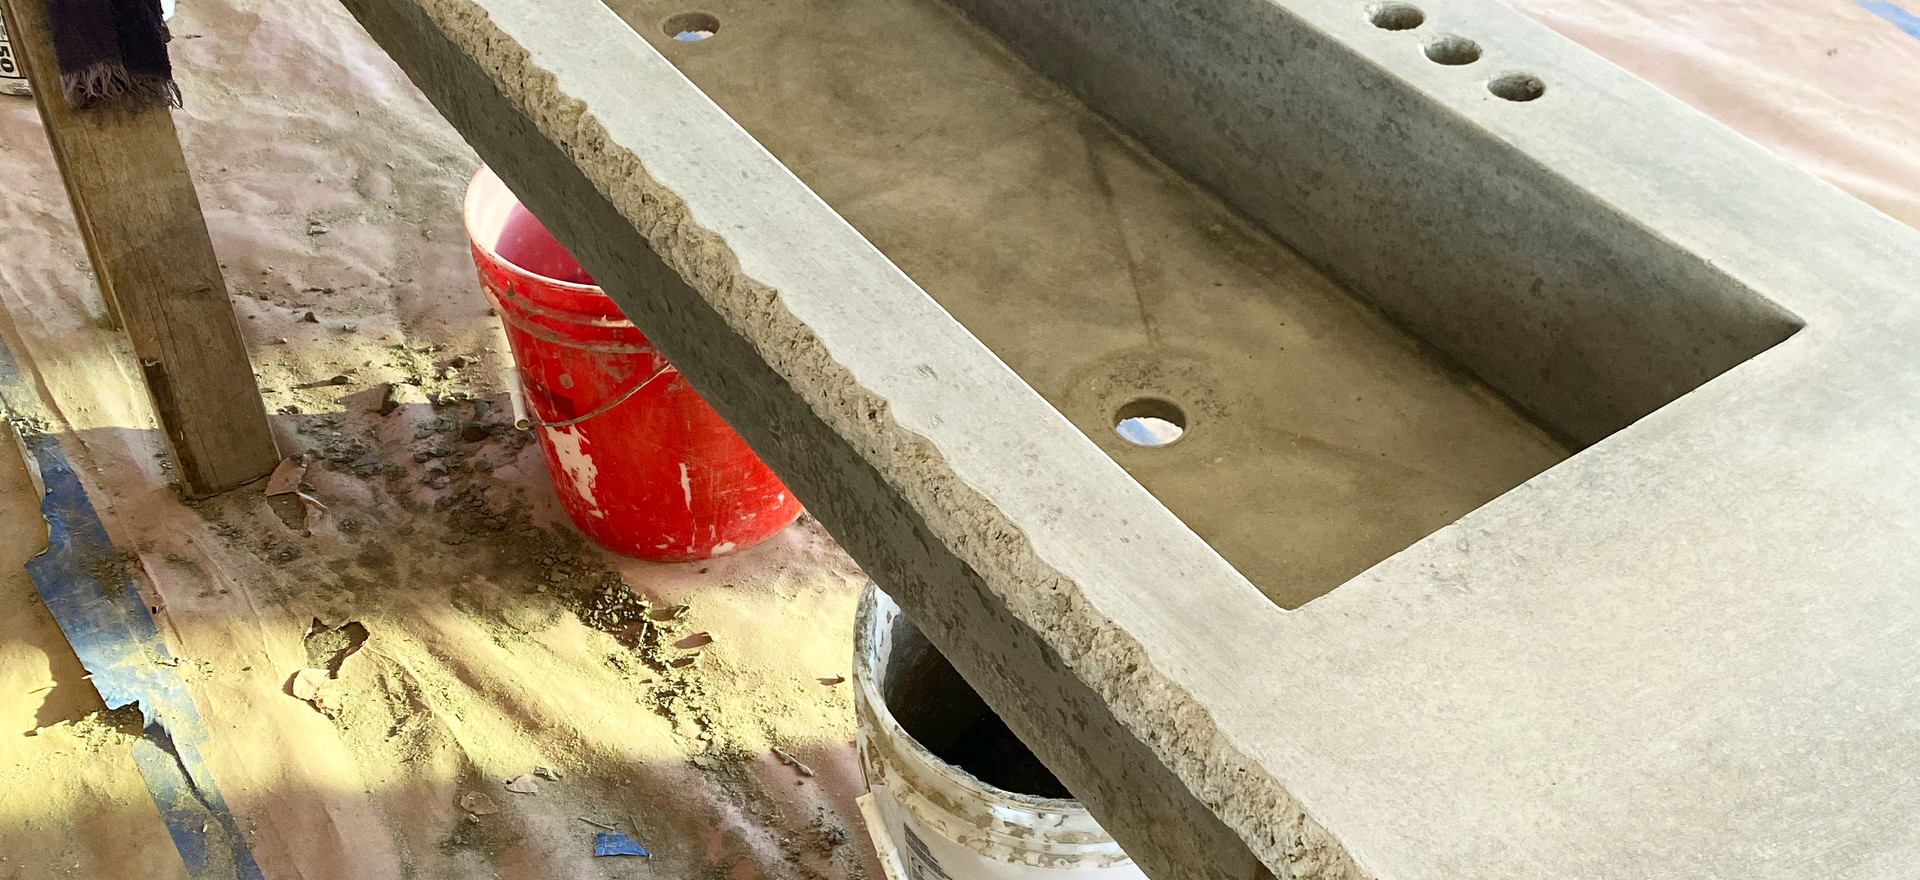 Concrete Sinks for Restrooms